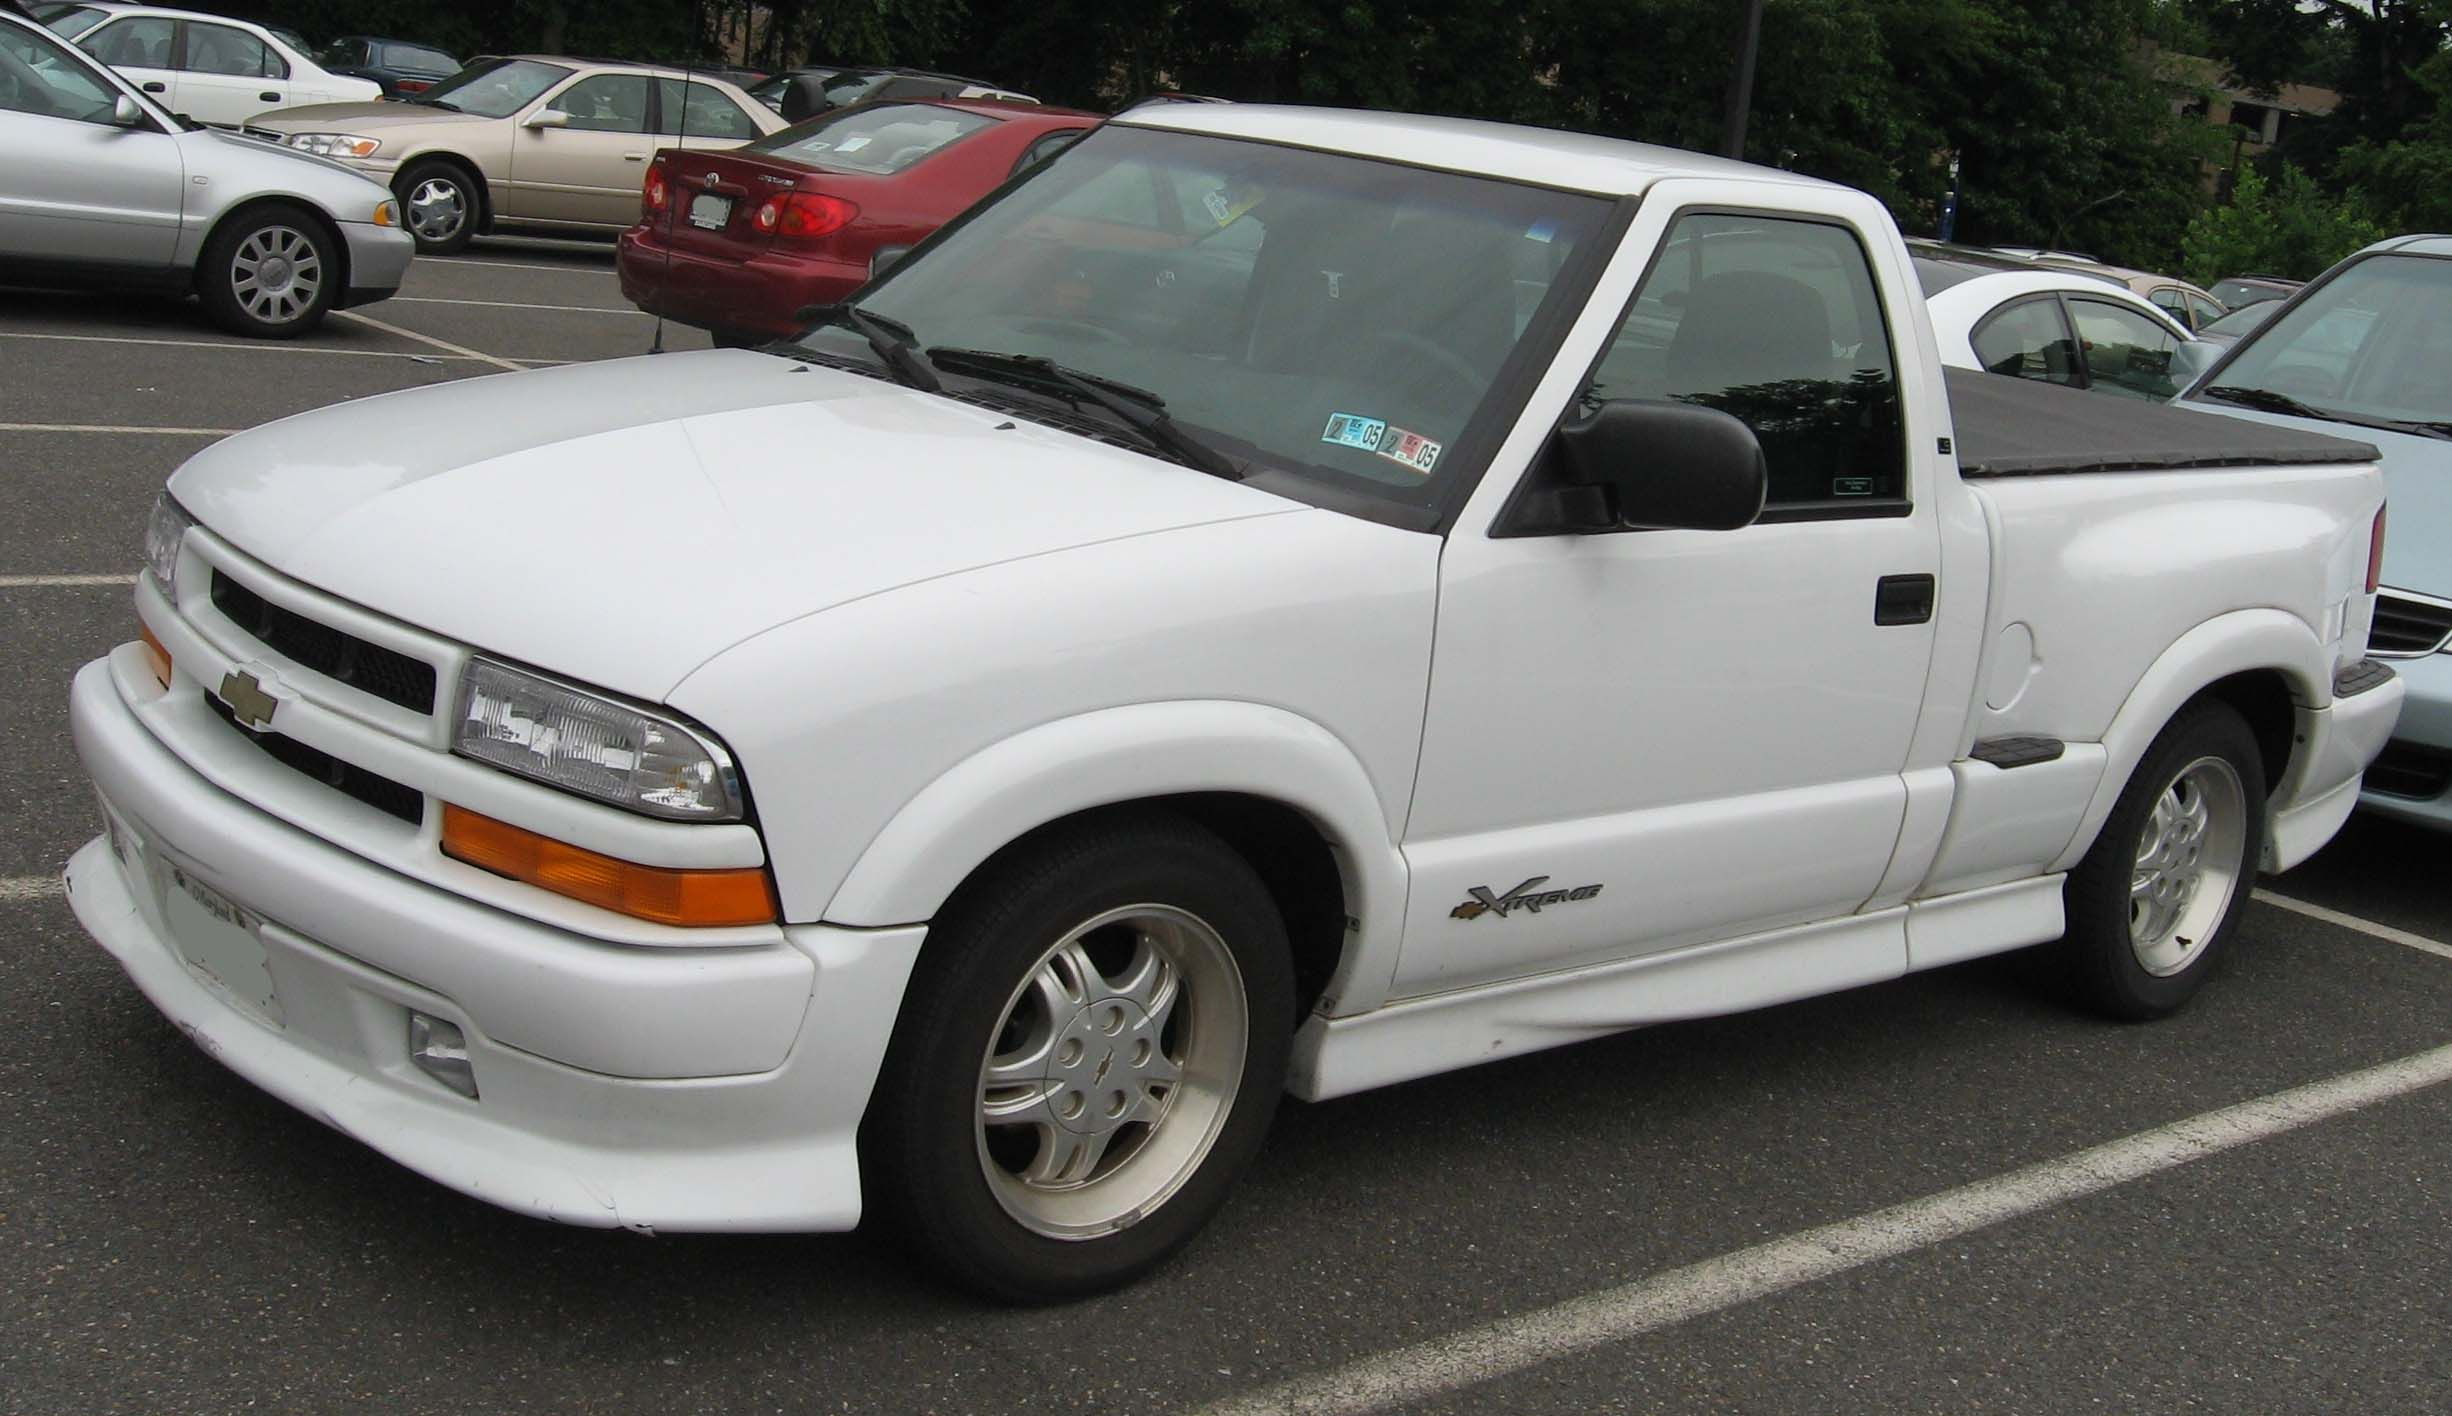 This Was What My Old Princess Truck Looked Like That Step Side